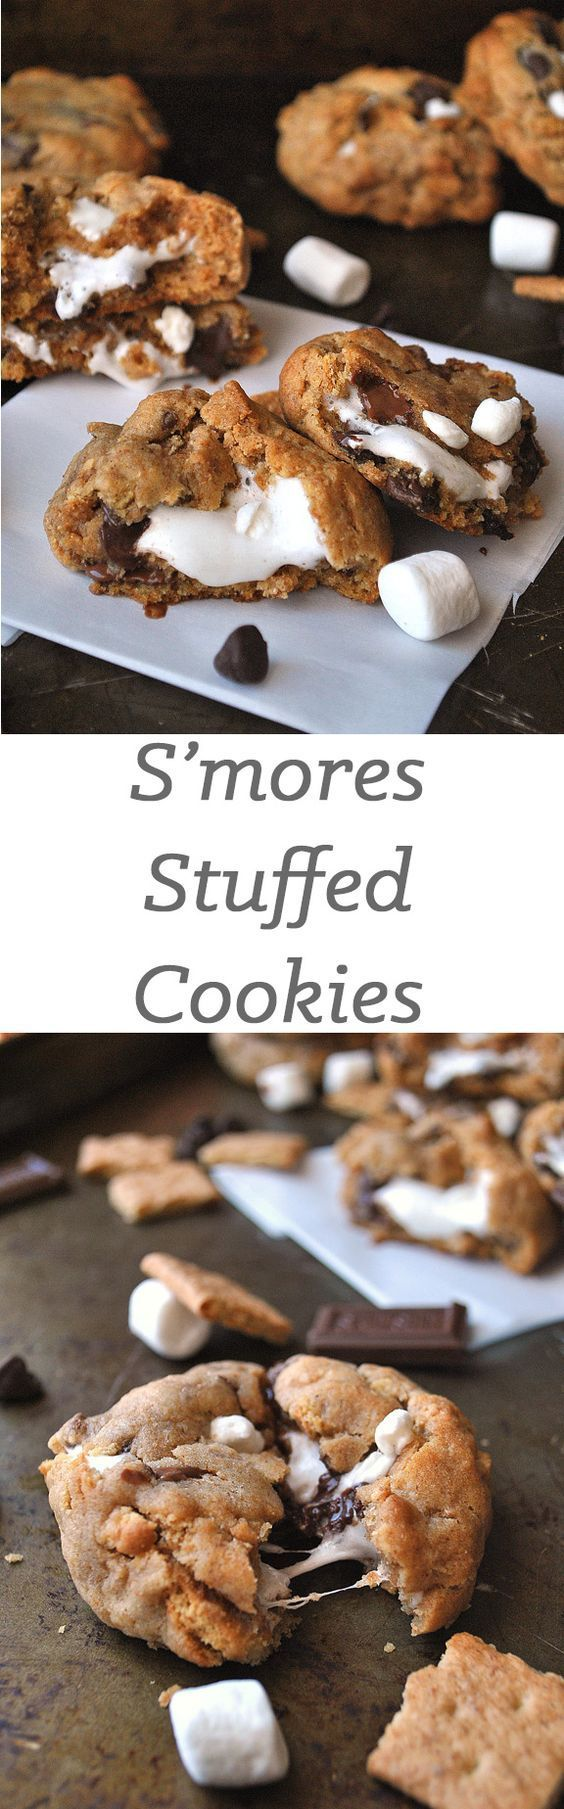 S'mores Stuffed Cookies | 9 Insanely Delicious S'mores Dessert Recipes | http://www.hercampus.com/health/food/9-insanely-delicious-smores-dessert-recipes